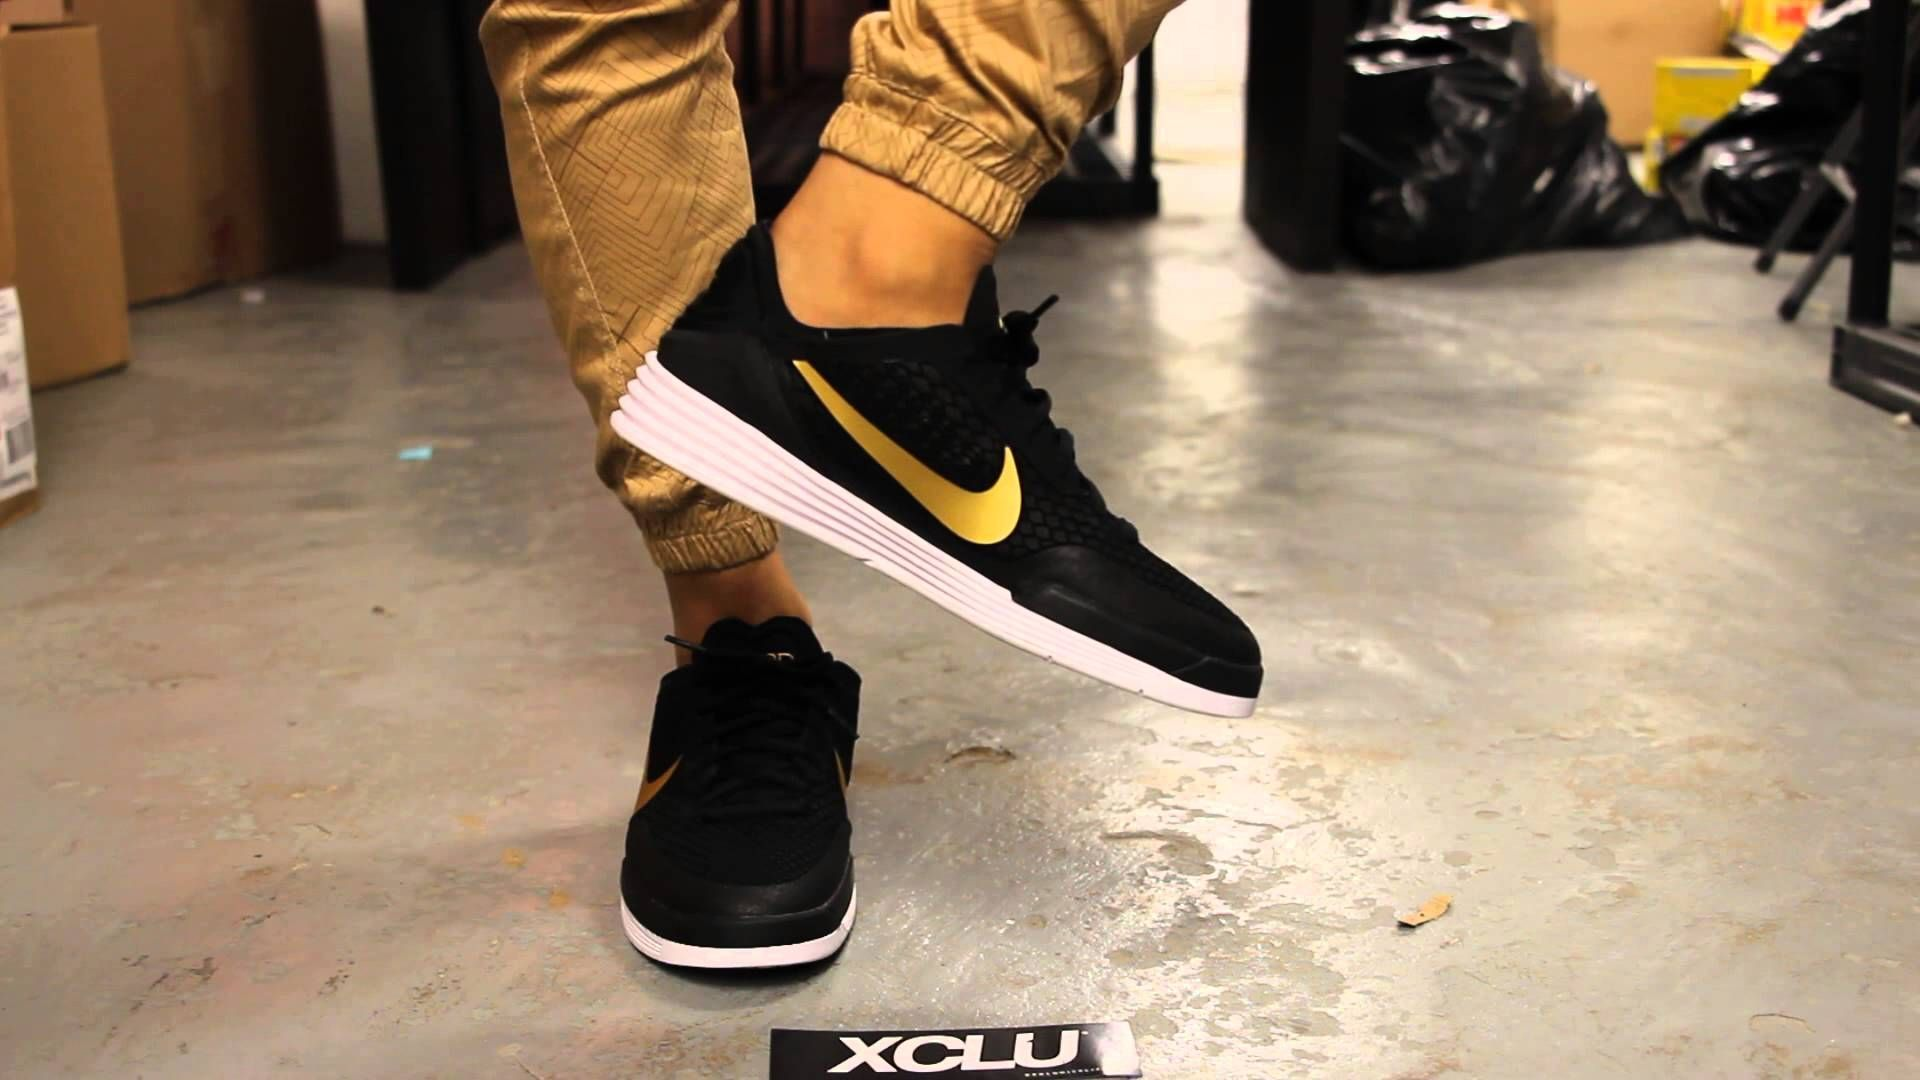 ebd9e5a11b4 Nike Paul Rodriguez 8 QS - On Feet Video   Exclucity - YouTube ...